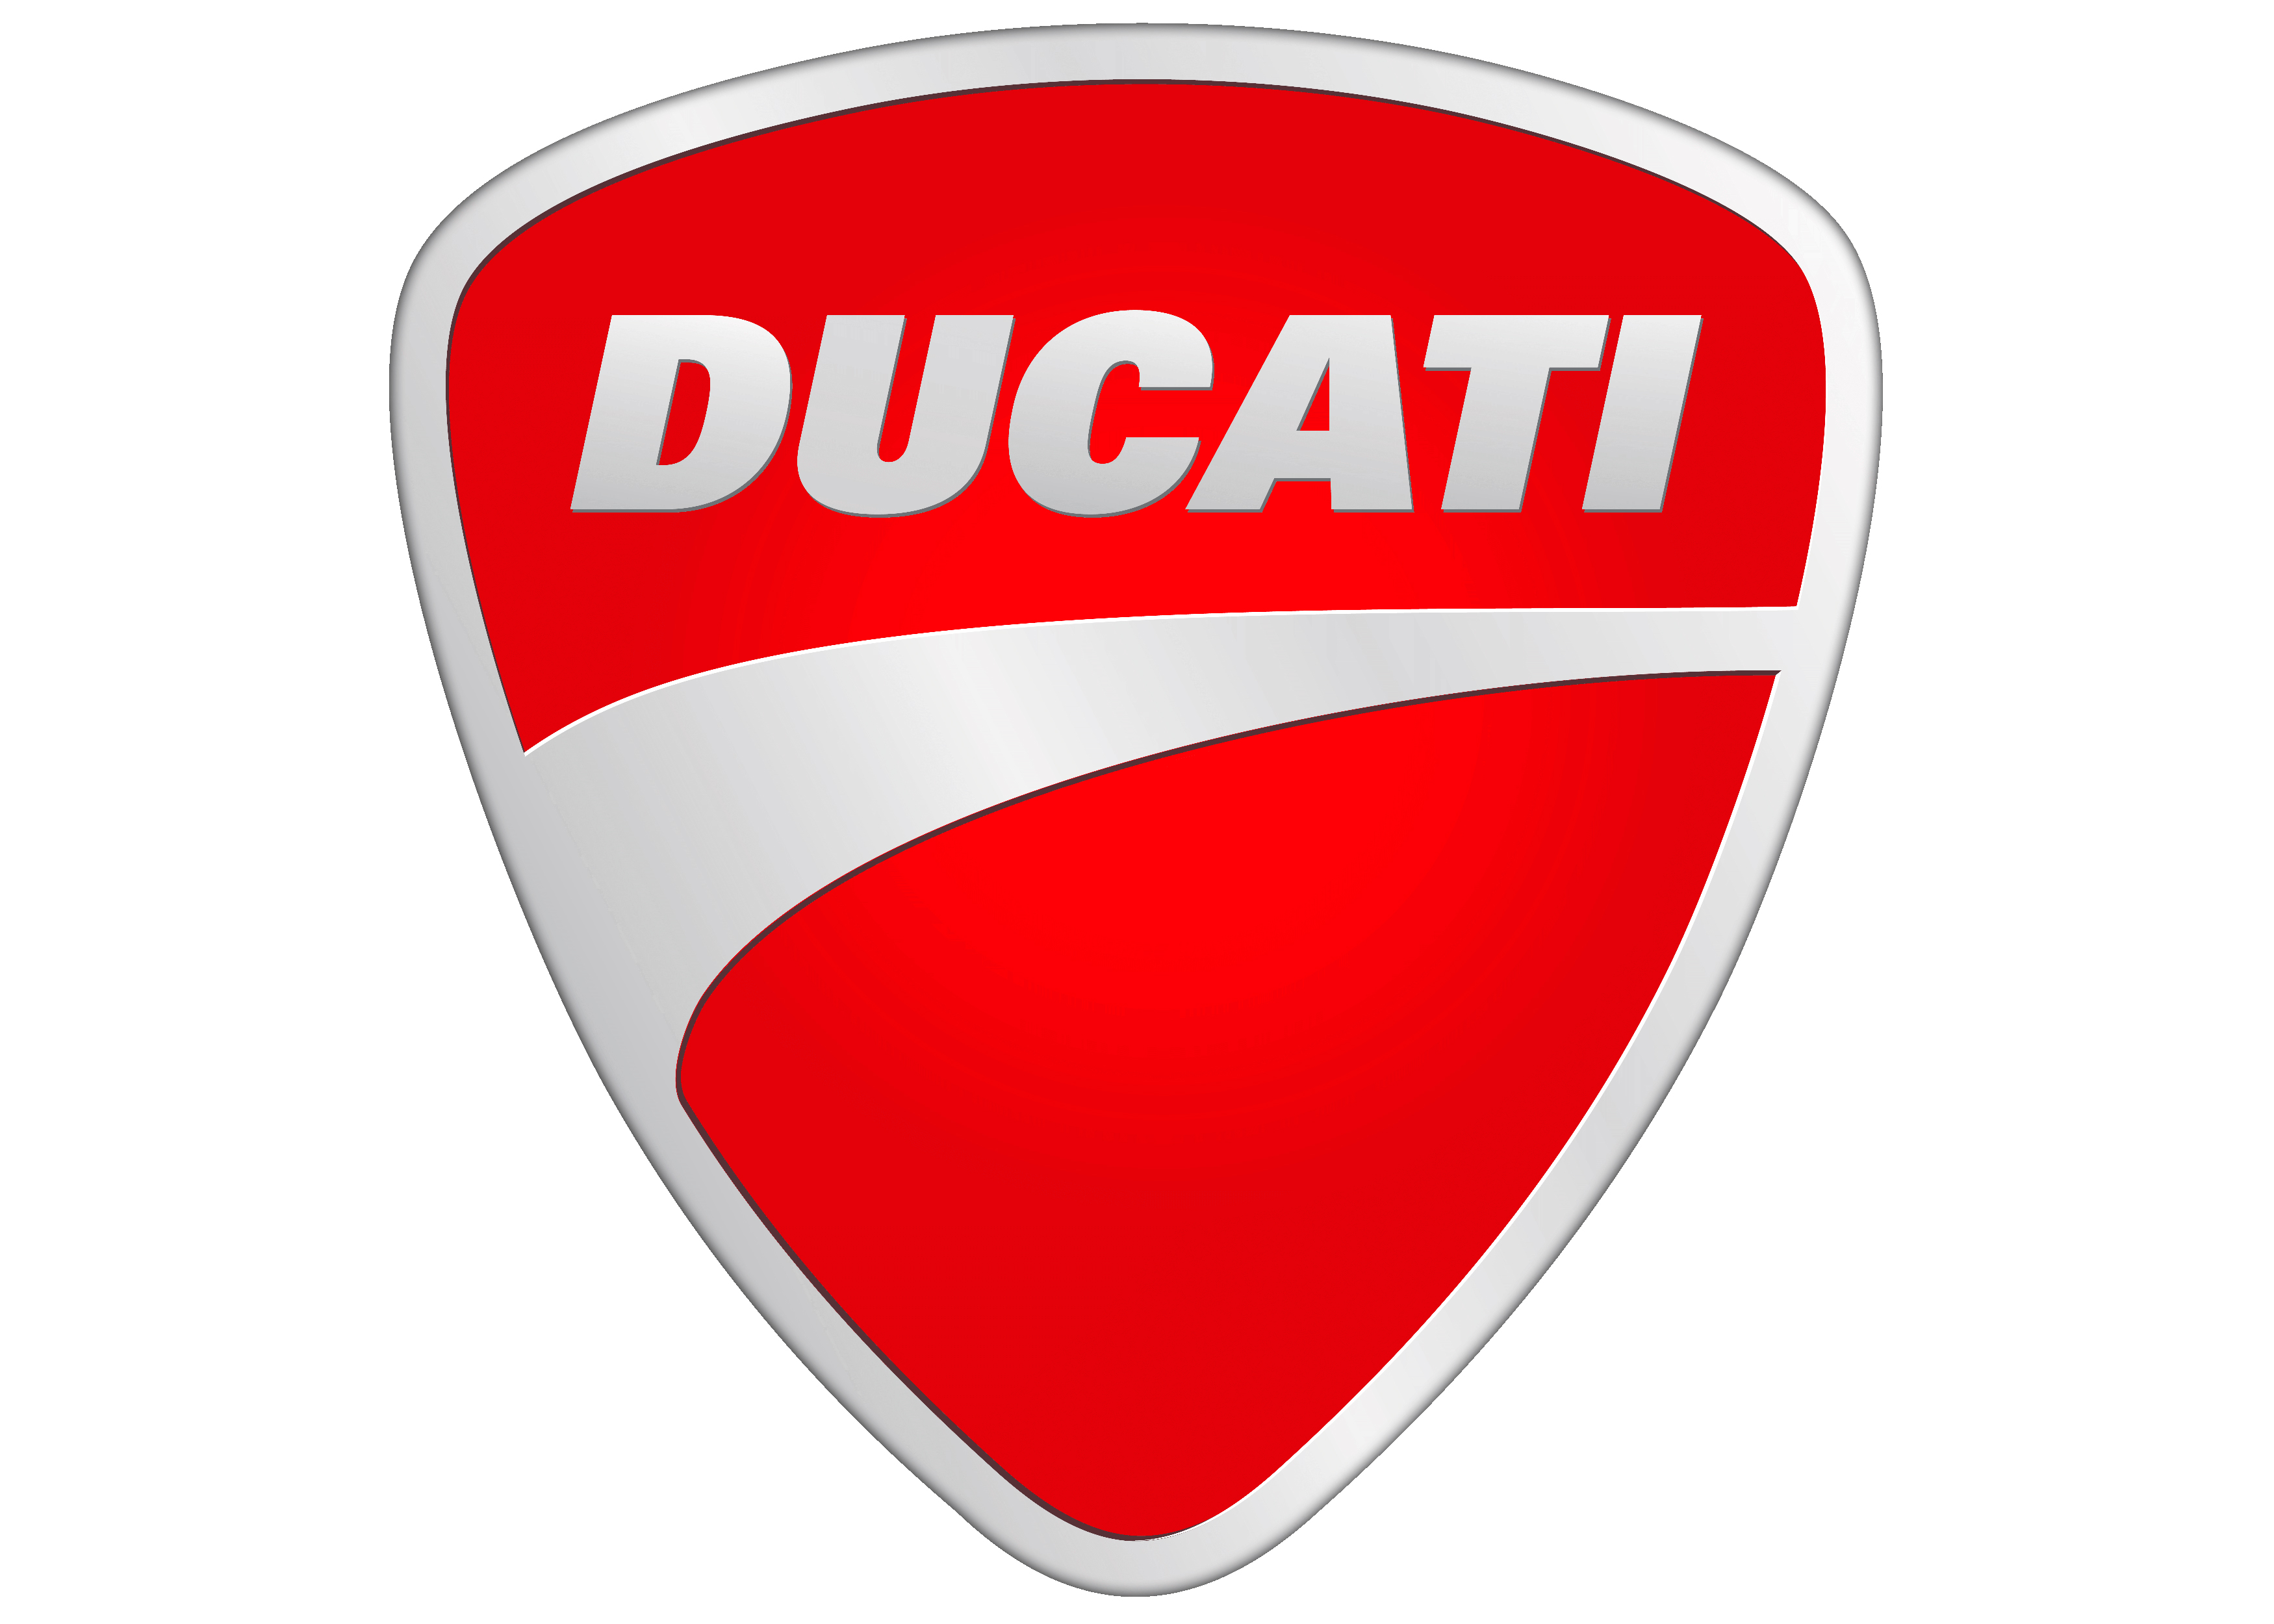 Ducati Motorcycle 121 Midnight Black Metallic Solvent Basecoat